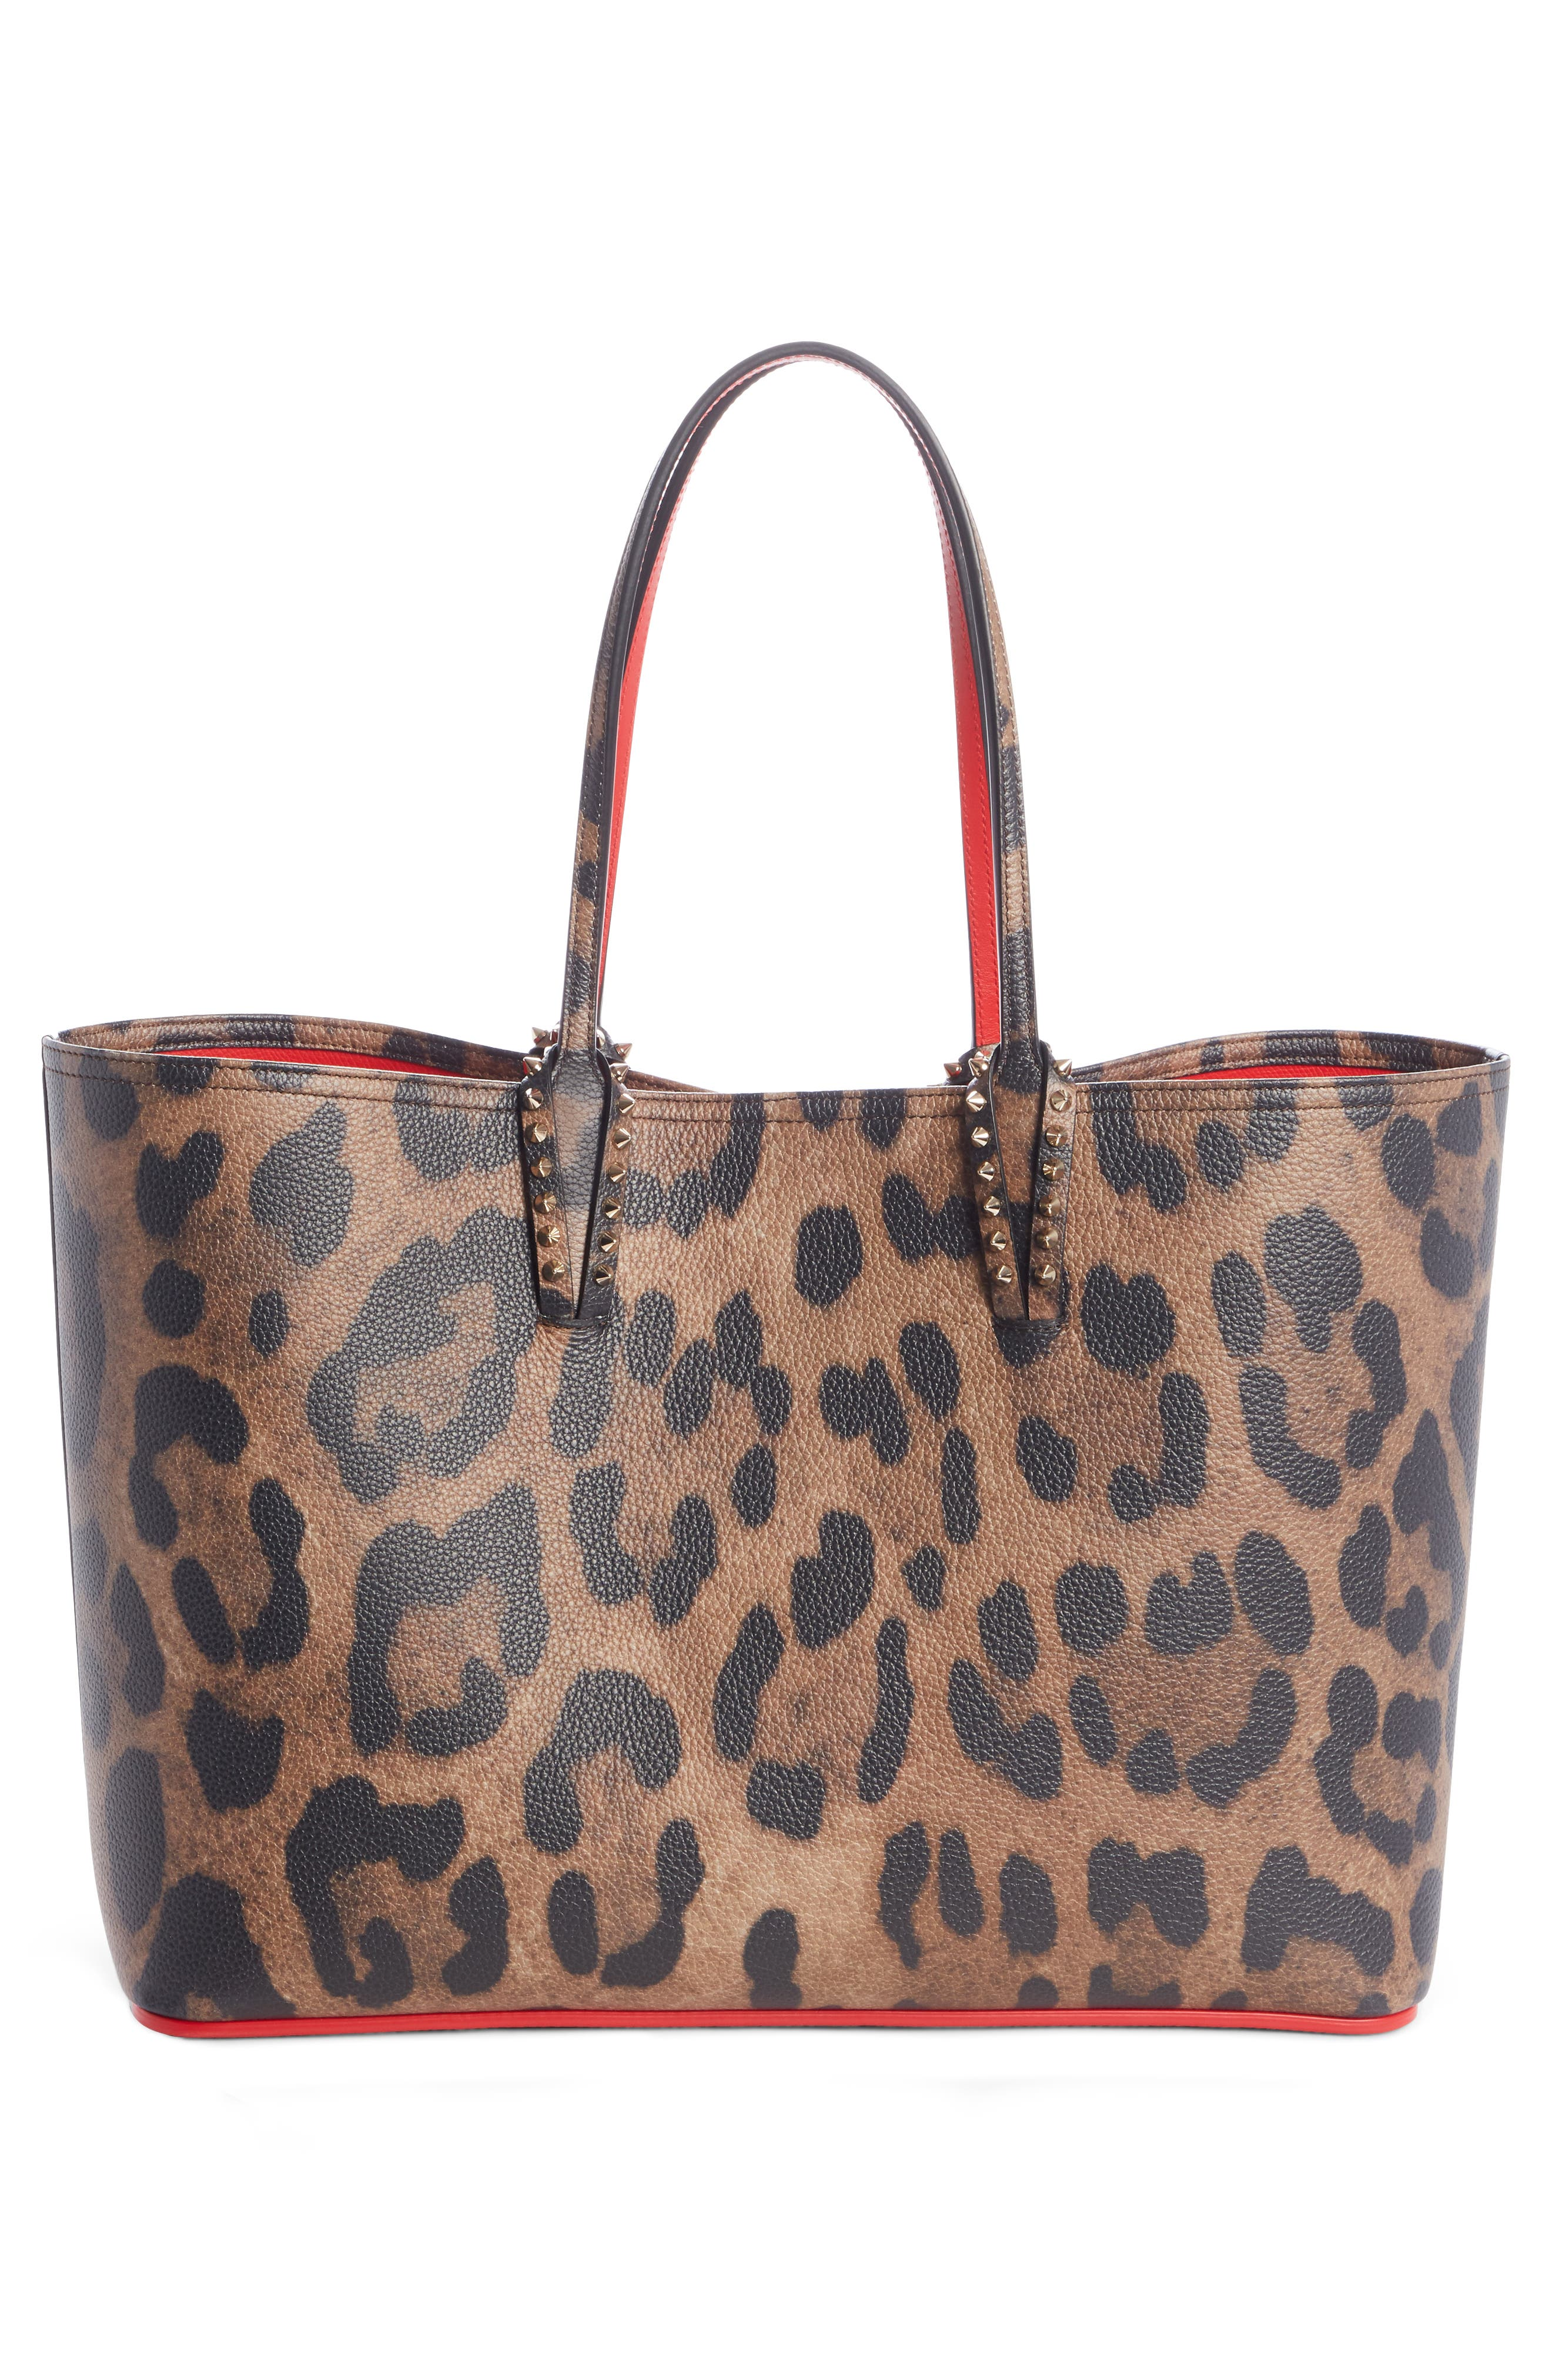 CHRISTIAN LOUBOUTIN,                             Large Cabata Leather Tote,                             Alternate thumbnail 2, color,                             BROWN